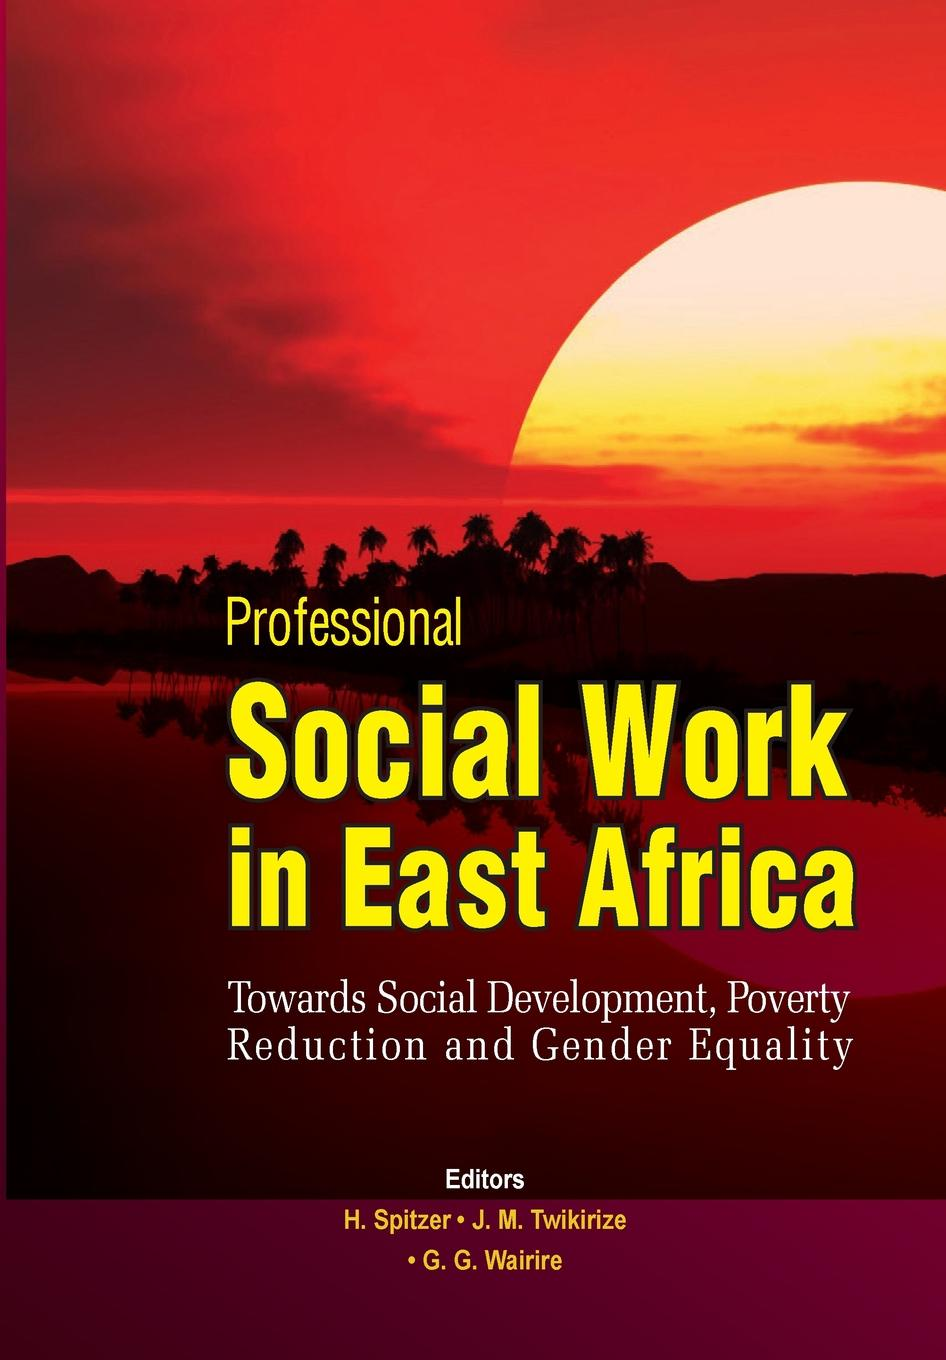 Professional Social Work in East Africa. Towards Social Development, Poverty Reduction and Gender Equality mary goretty oyella basic education poverty reduction and the realisation of equality in northern uganda